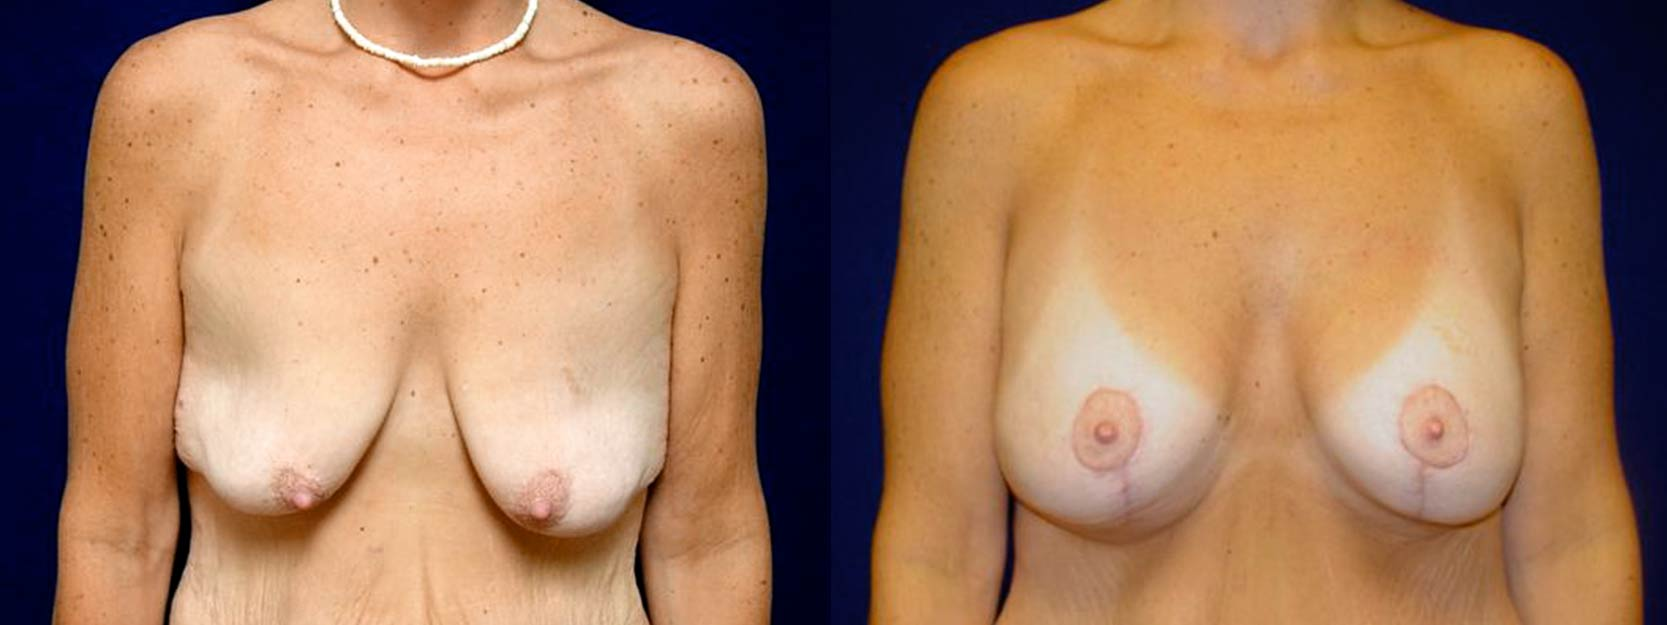 Frontal View - Breast Augmentation with Lift After Massive Weight Loss